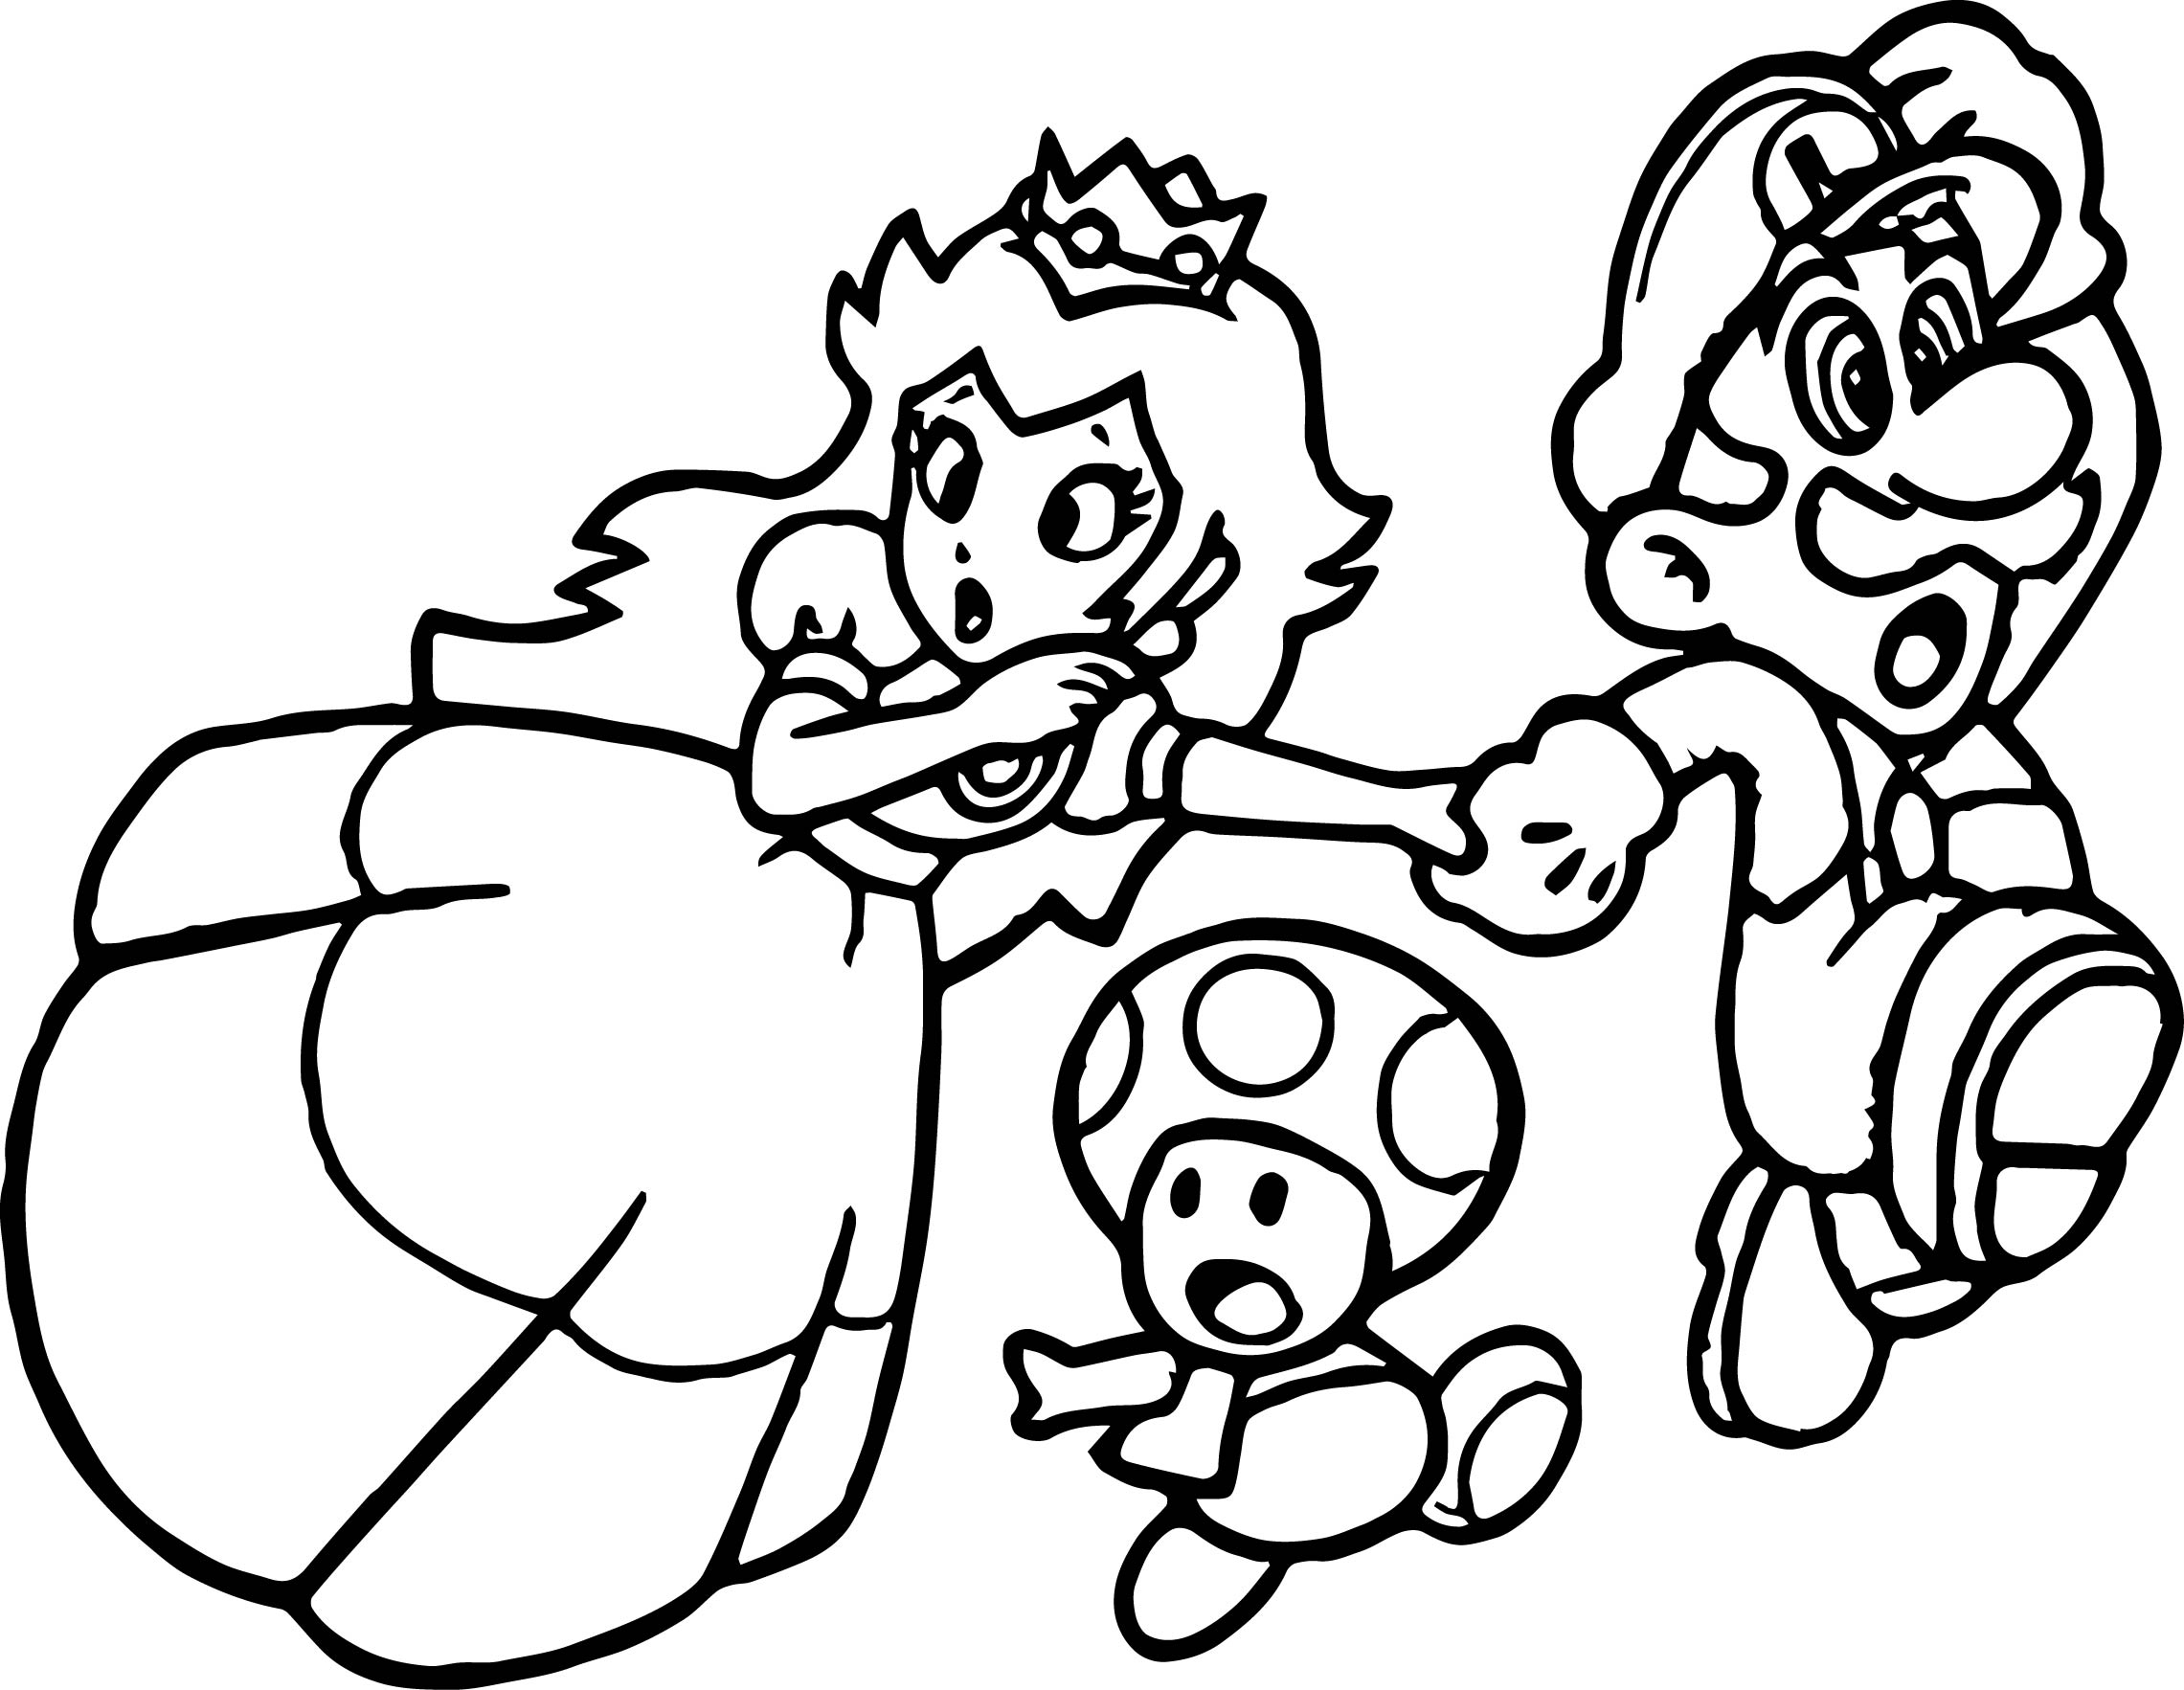 mario pictures to print mario coloring pages themes best apps for kids pictures mario print to